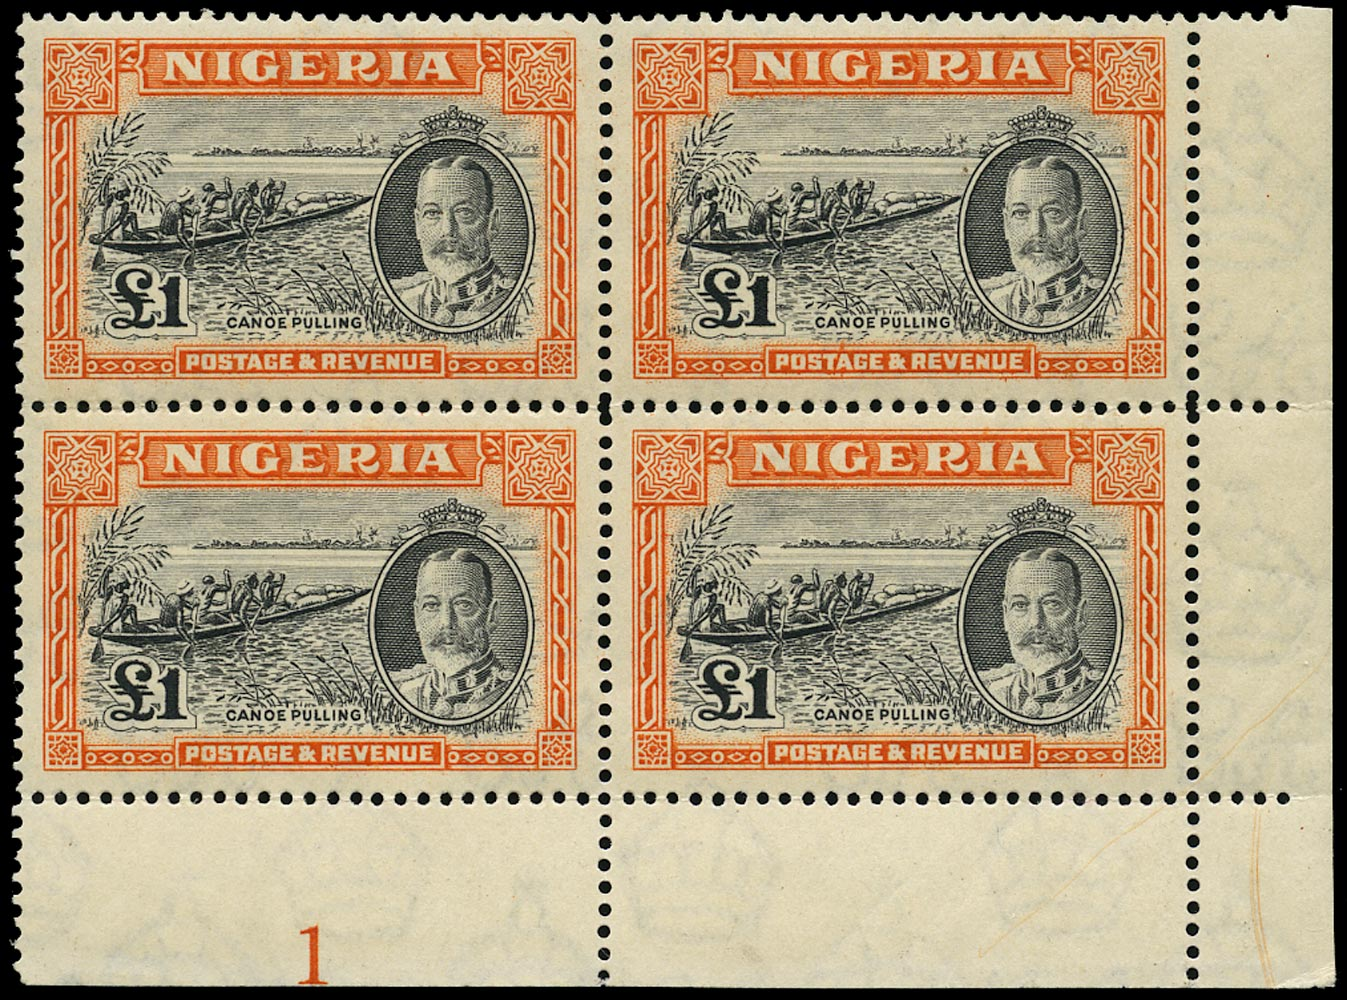 NIGERIA 1936  SG45 Mint £1 black and orange plate block of 4